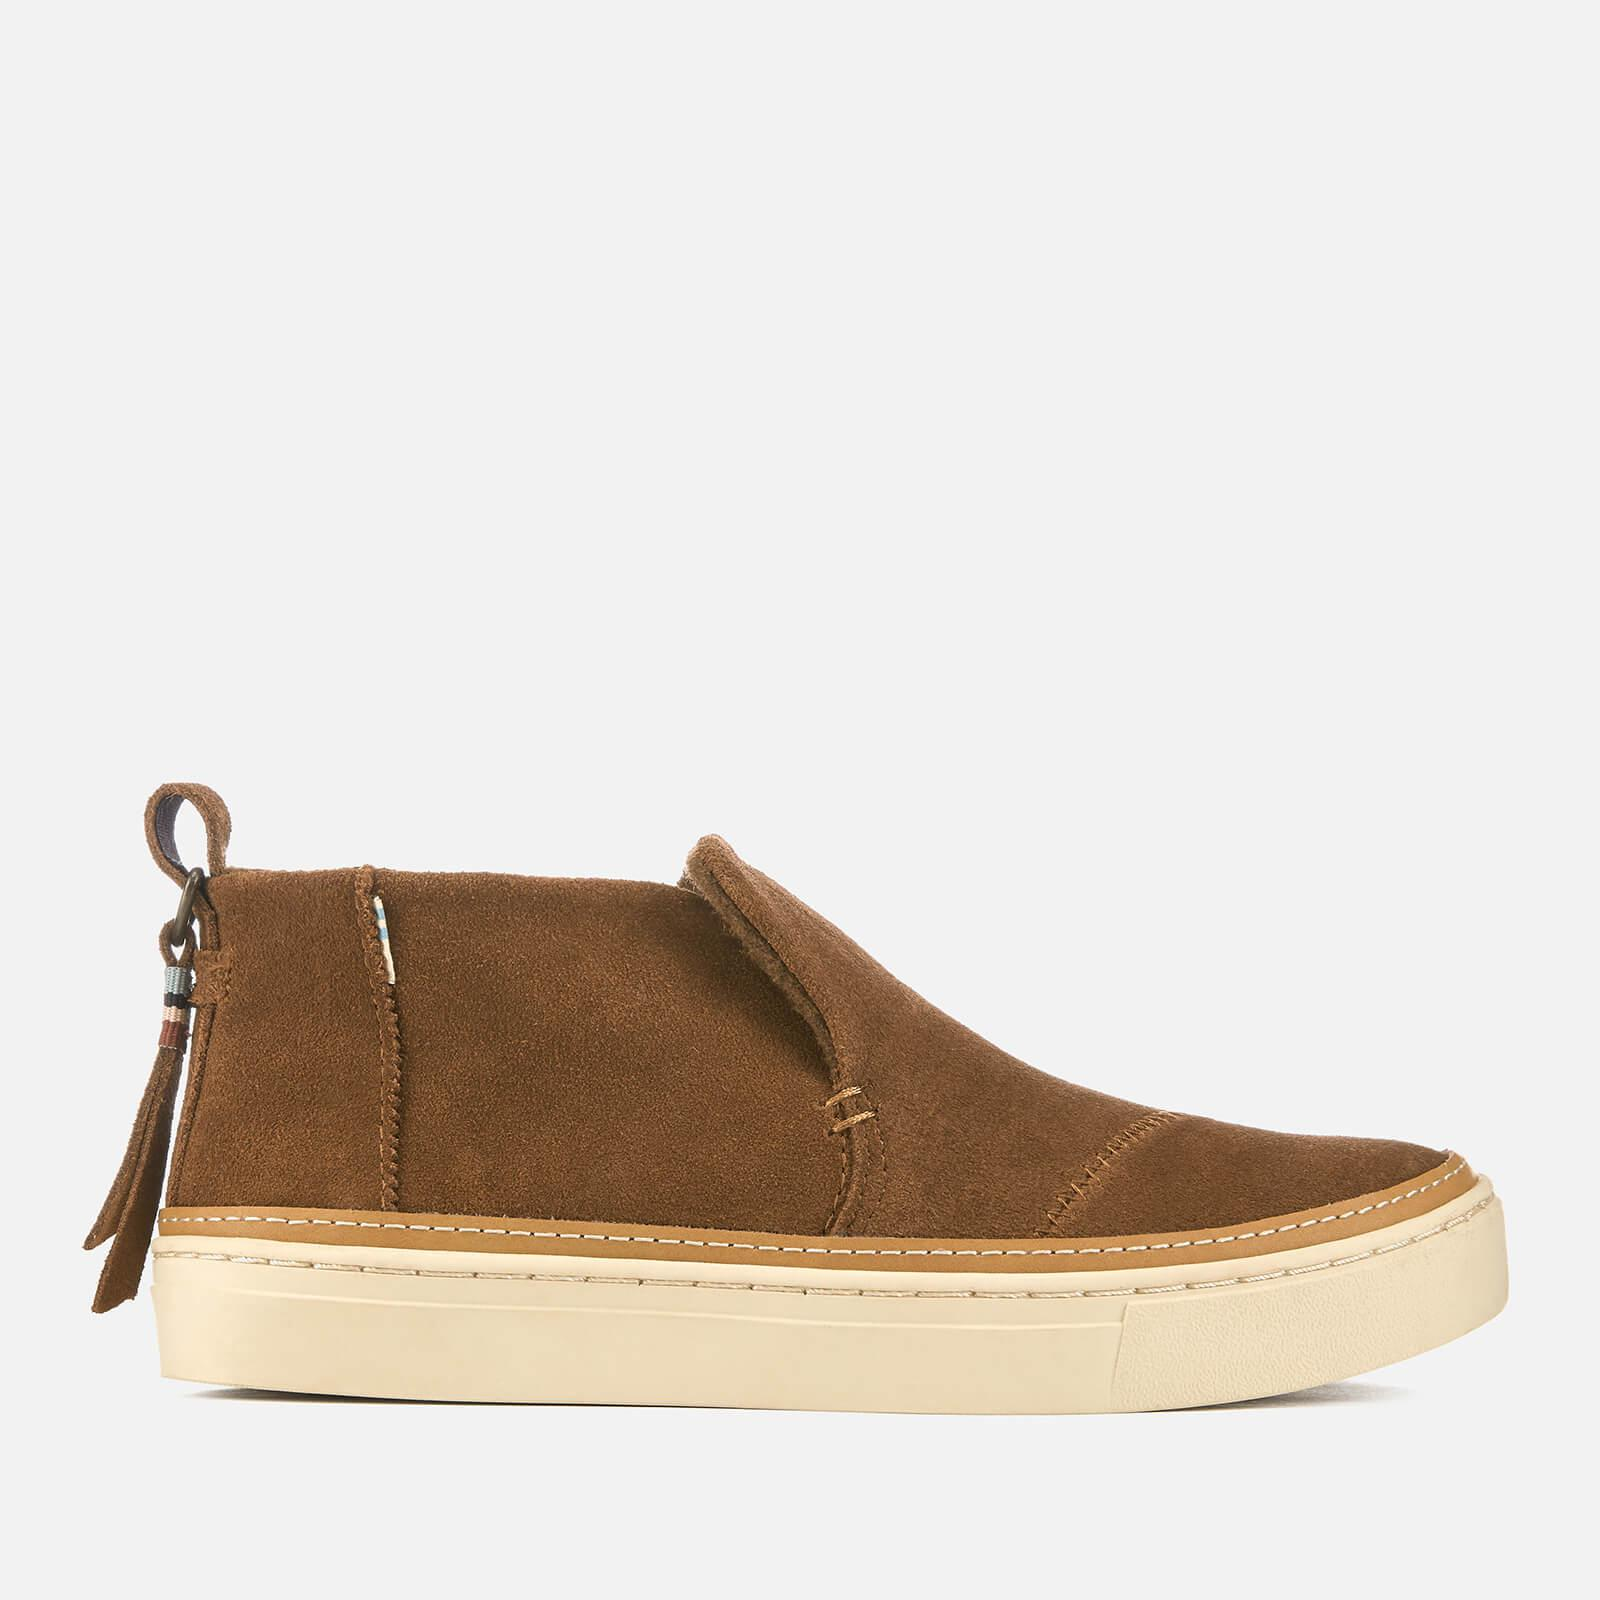 19fc208542f TOMS Paxton Suede Mid Slip On Trainers in Brown - Save 29% - Lyst